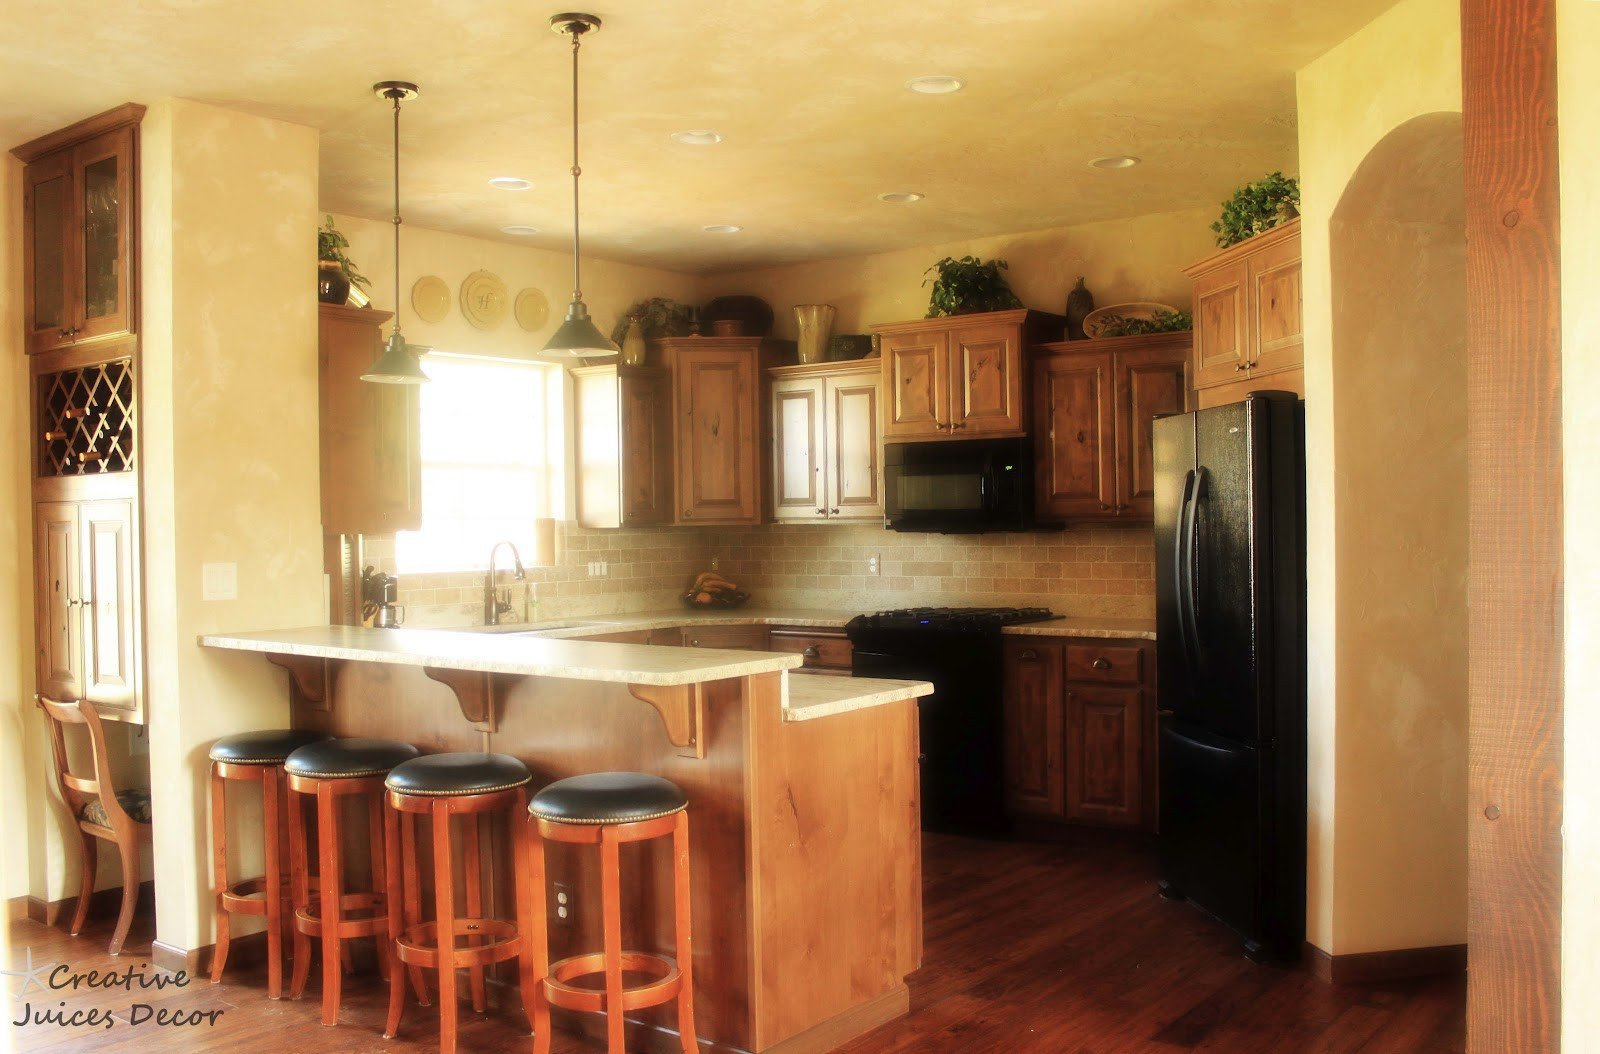 Top Of Kitchen Cabinet Decor Beautiful Creative Juices Decor Decorating the top Of Your Kitchen Cabinets A Few Tips and Tricks